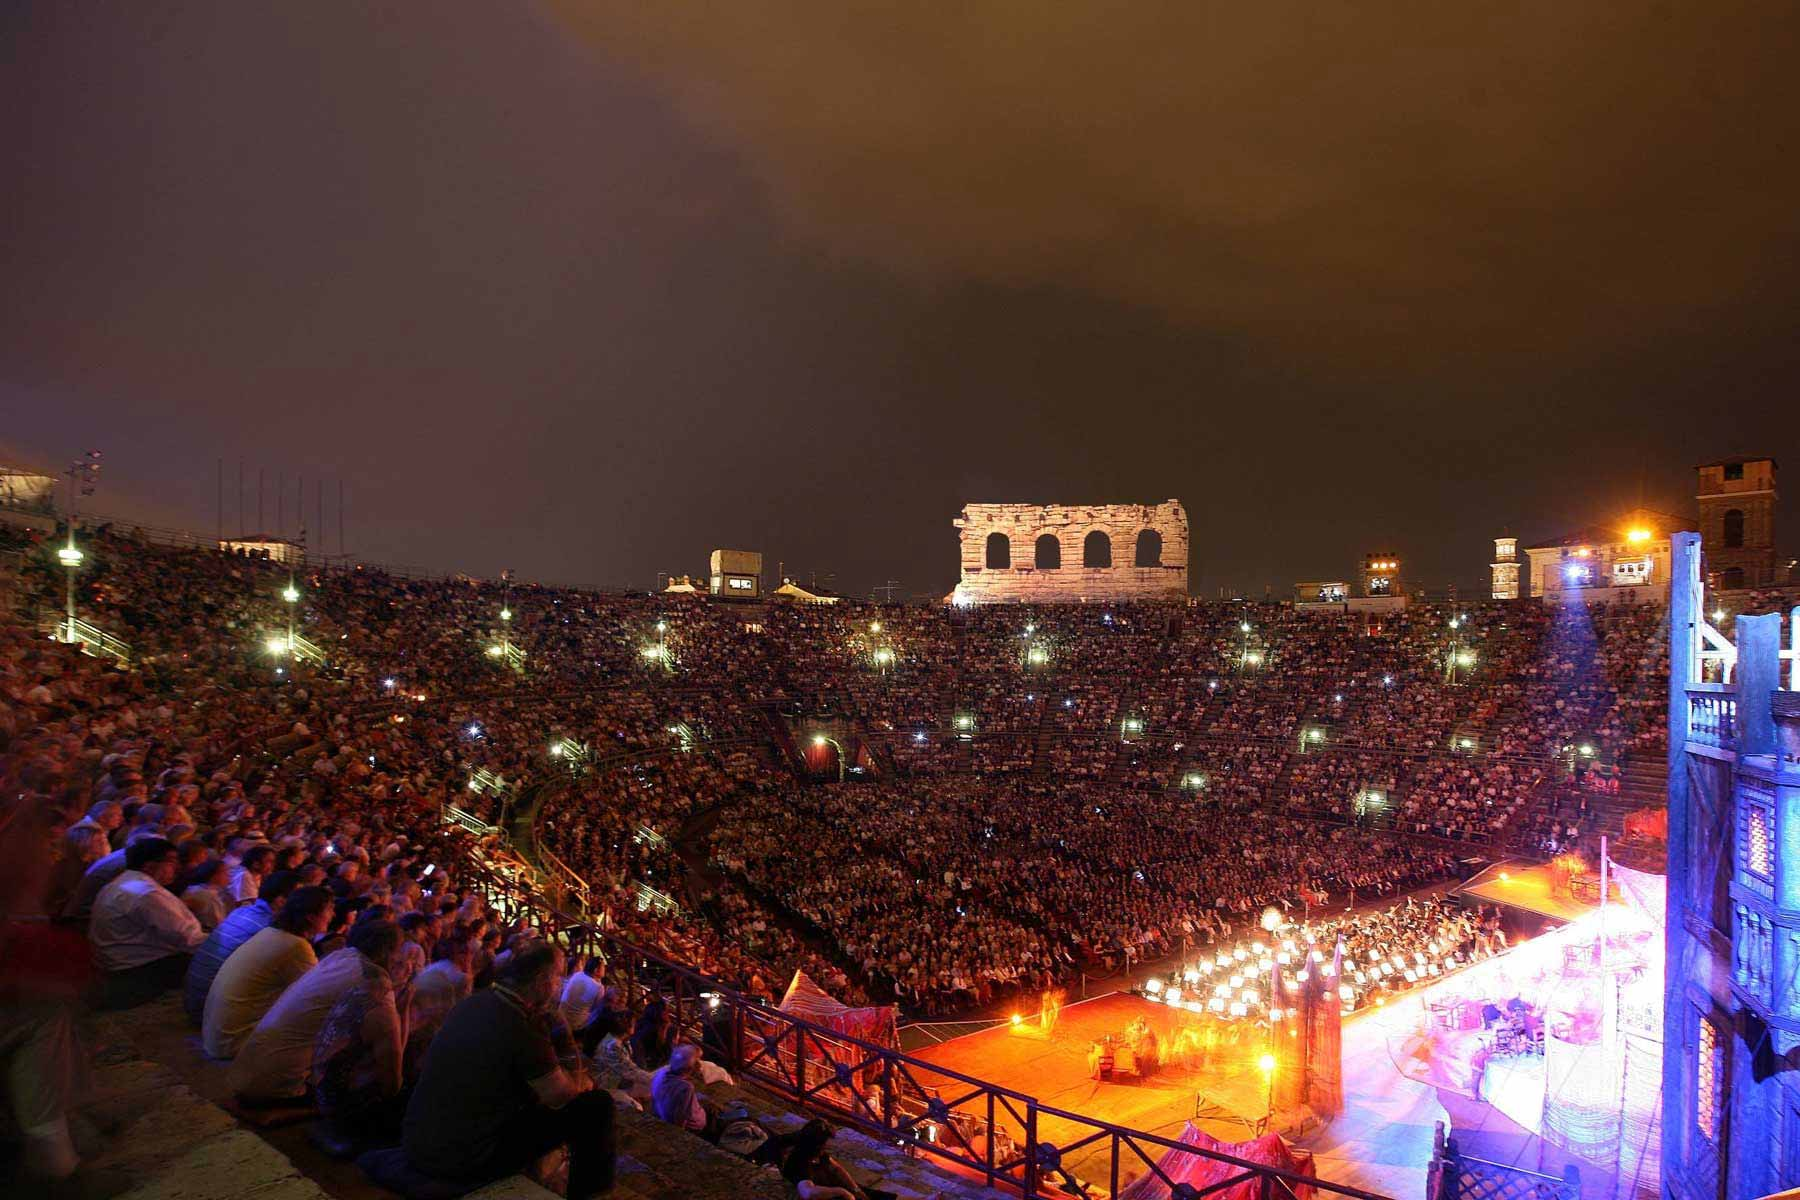 Enjoy a summer's evening at the outdoor Arena di Verona